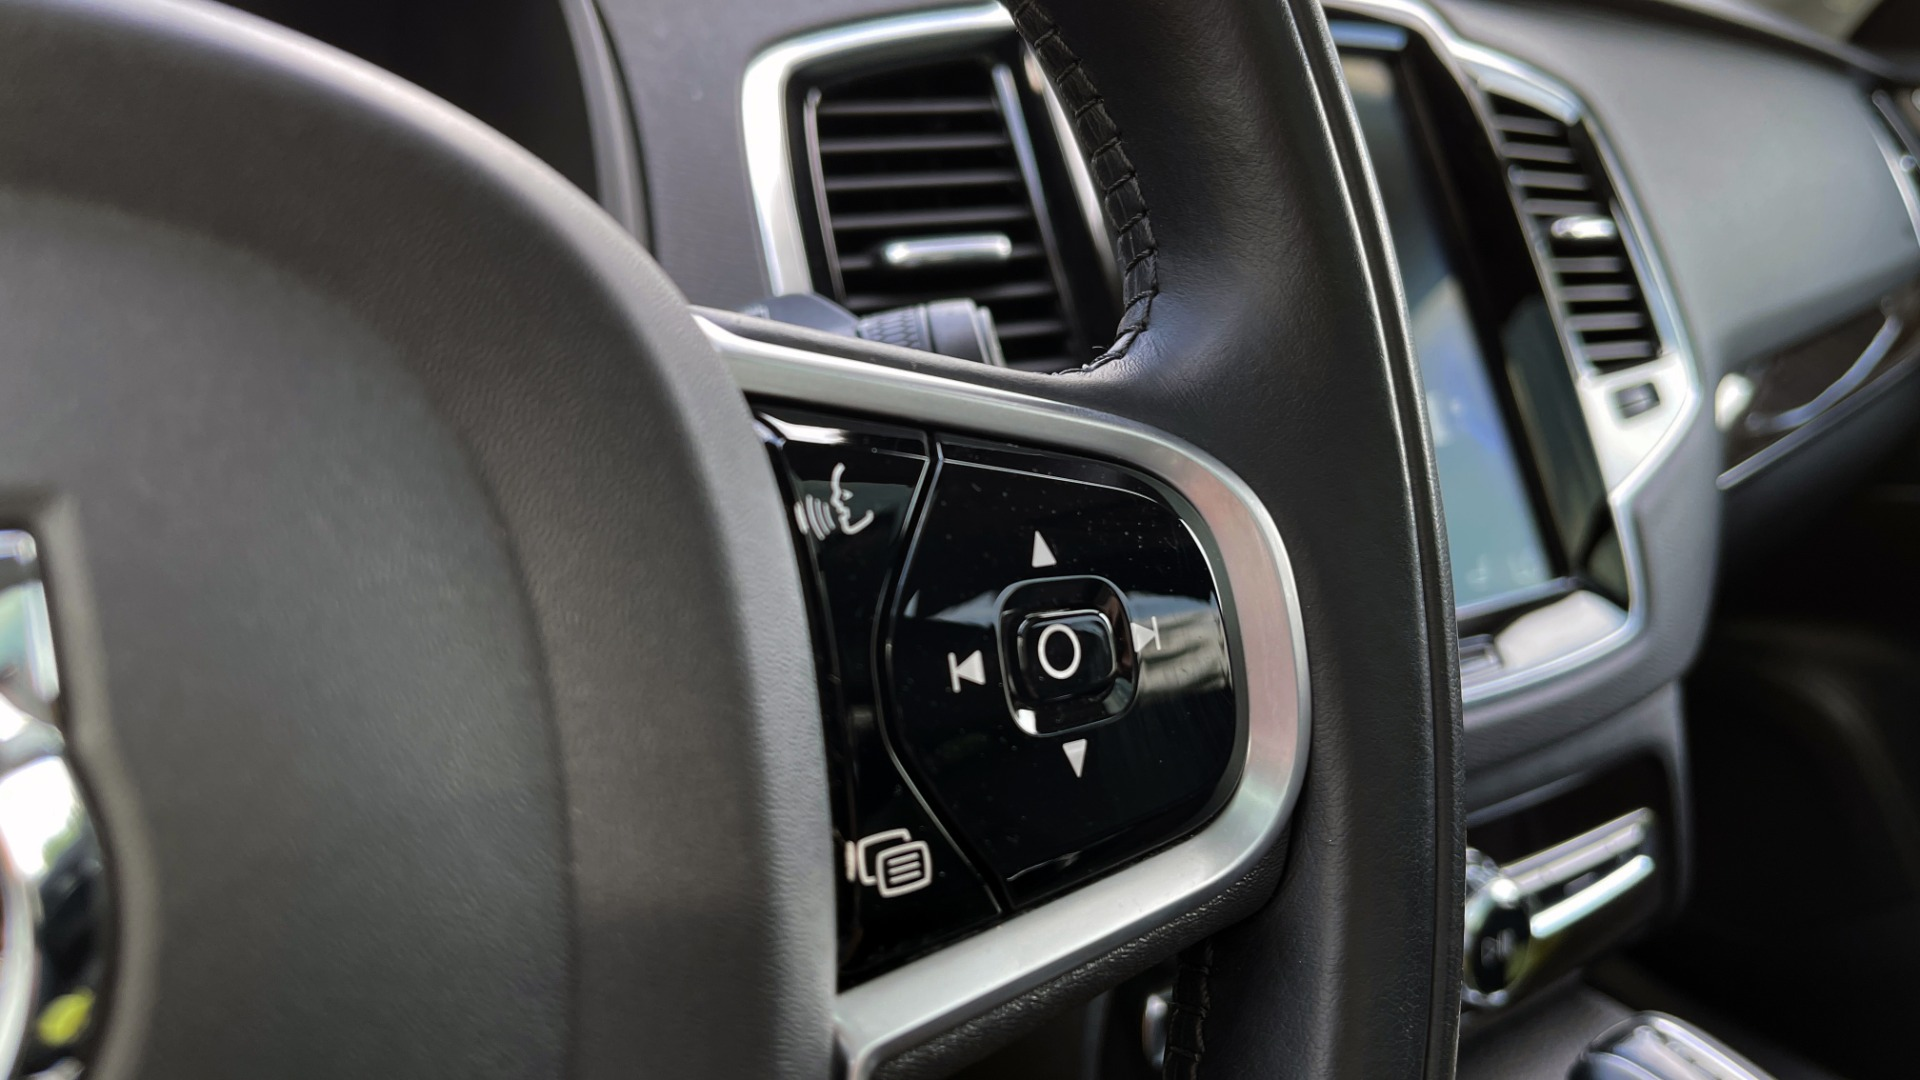 Used 2018 Volvo XC90 T5 AWD MOMENTUM PLUS / NAV / SUNROOF / 3-ROW / REARVIEW for sale $40,295 at Formula Imports in Charlotte NC 28227 43